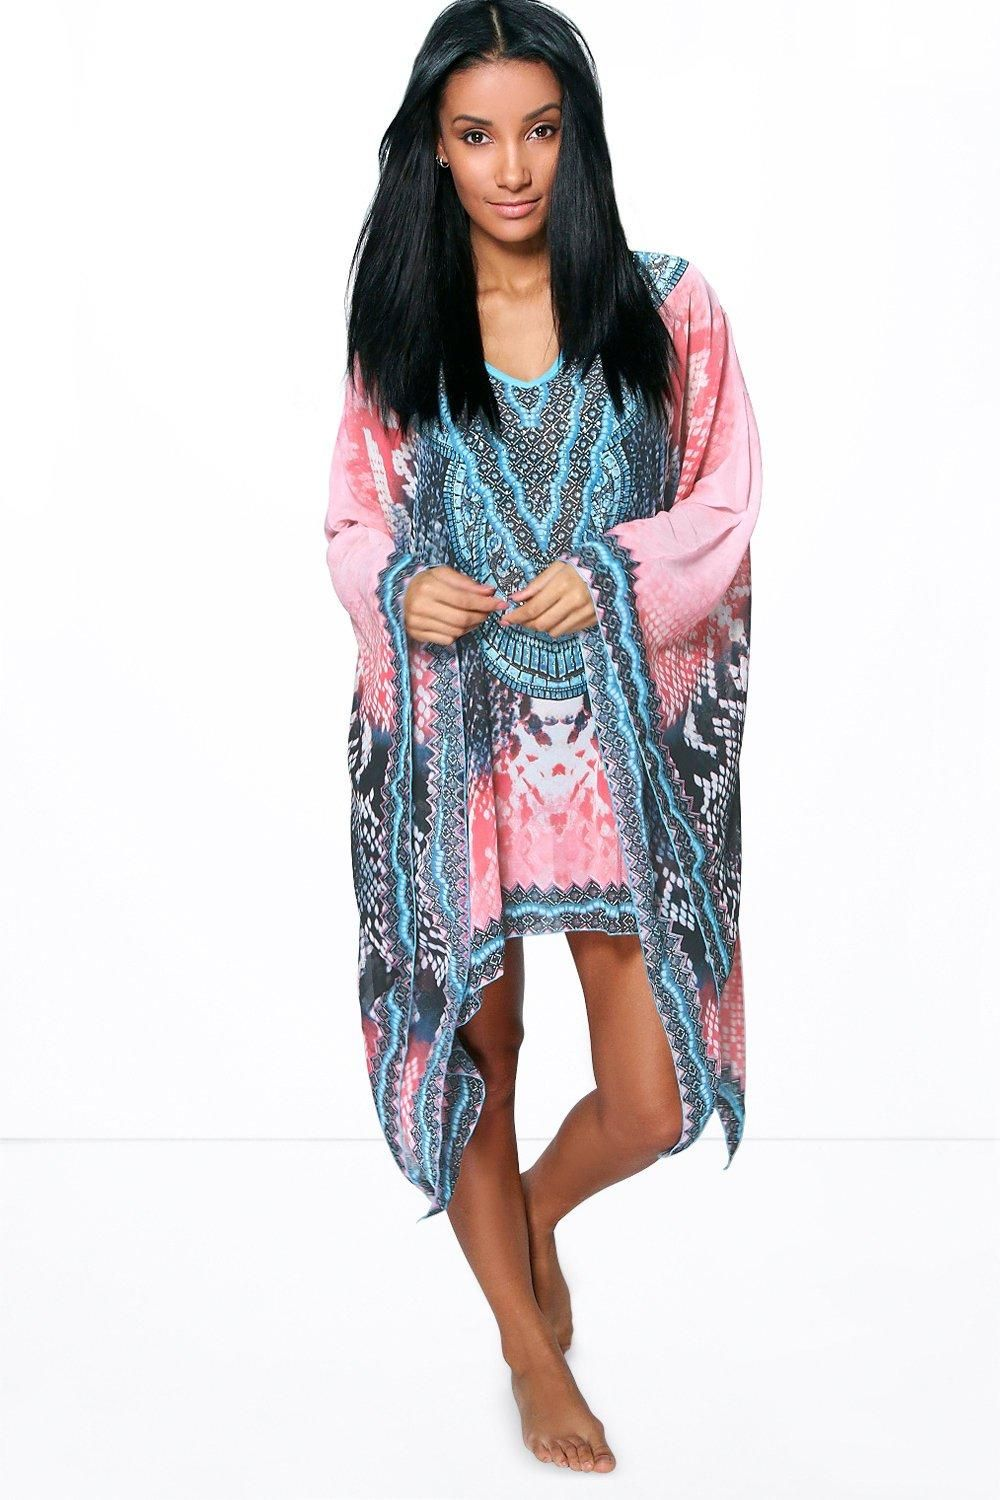 069c66adf3bd3 Evie Snake Print And Diamante Beach Cover Up | Get in my Wardroom ...